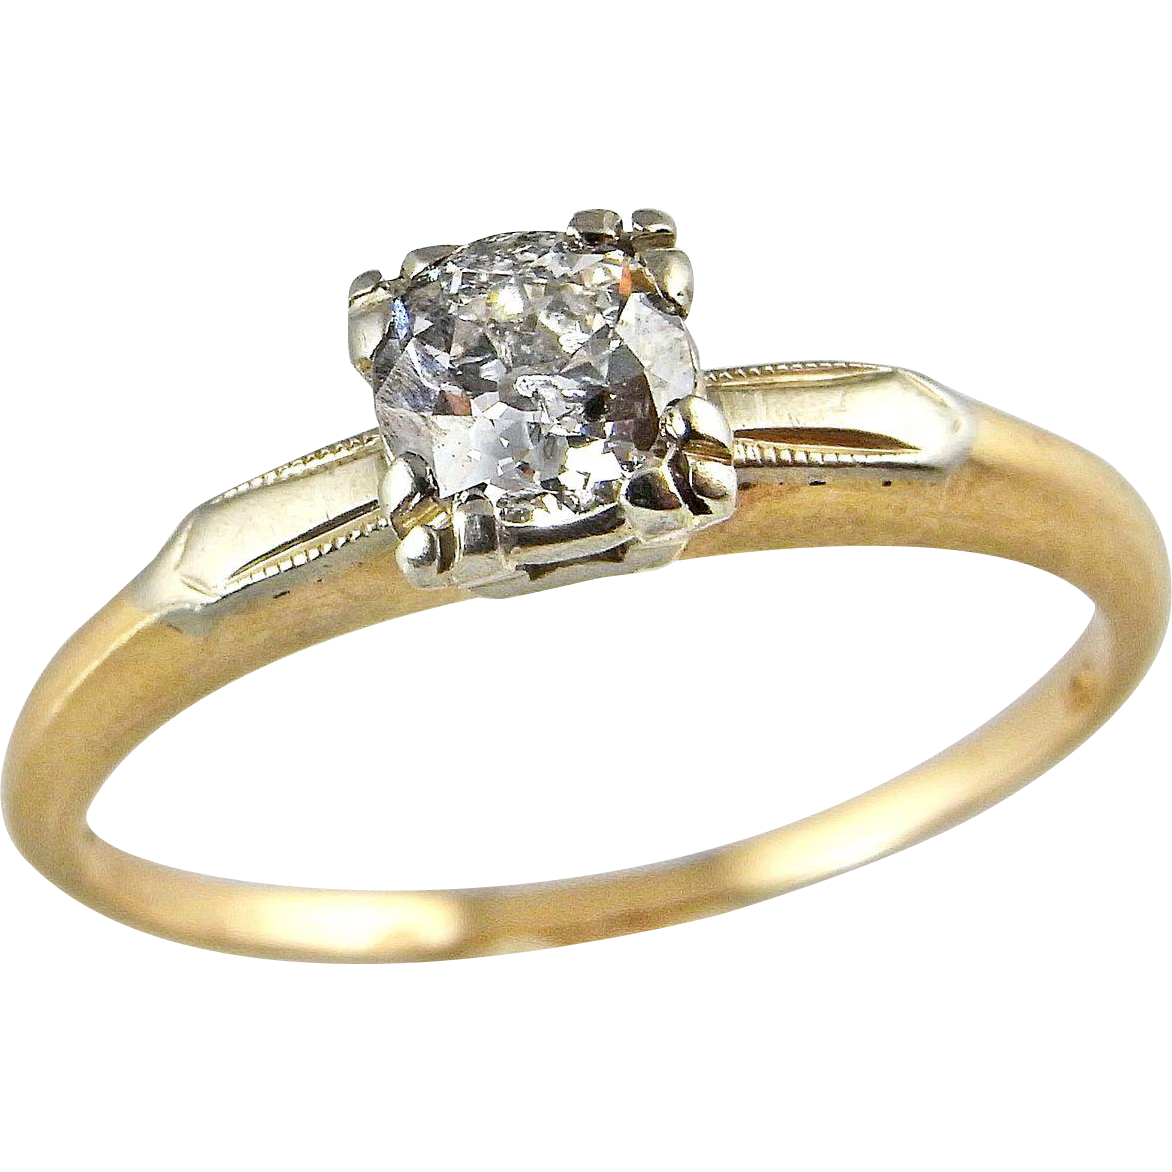 Antique s Engagement Ring Estate Jewelry vintage wedding rings Antique s Engagement Ring Estate Jewelry 14K Gold s s Art Deco Handmade Diamond Ring Vintage Engagement Ring